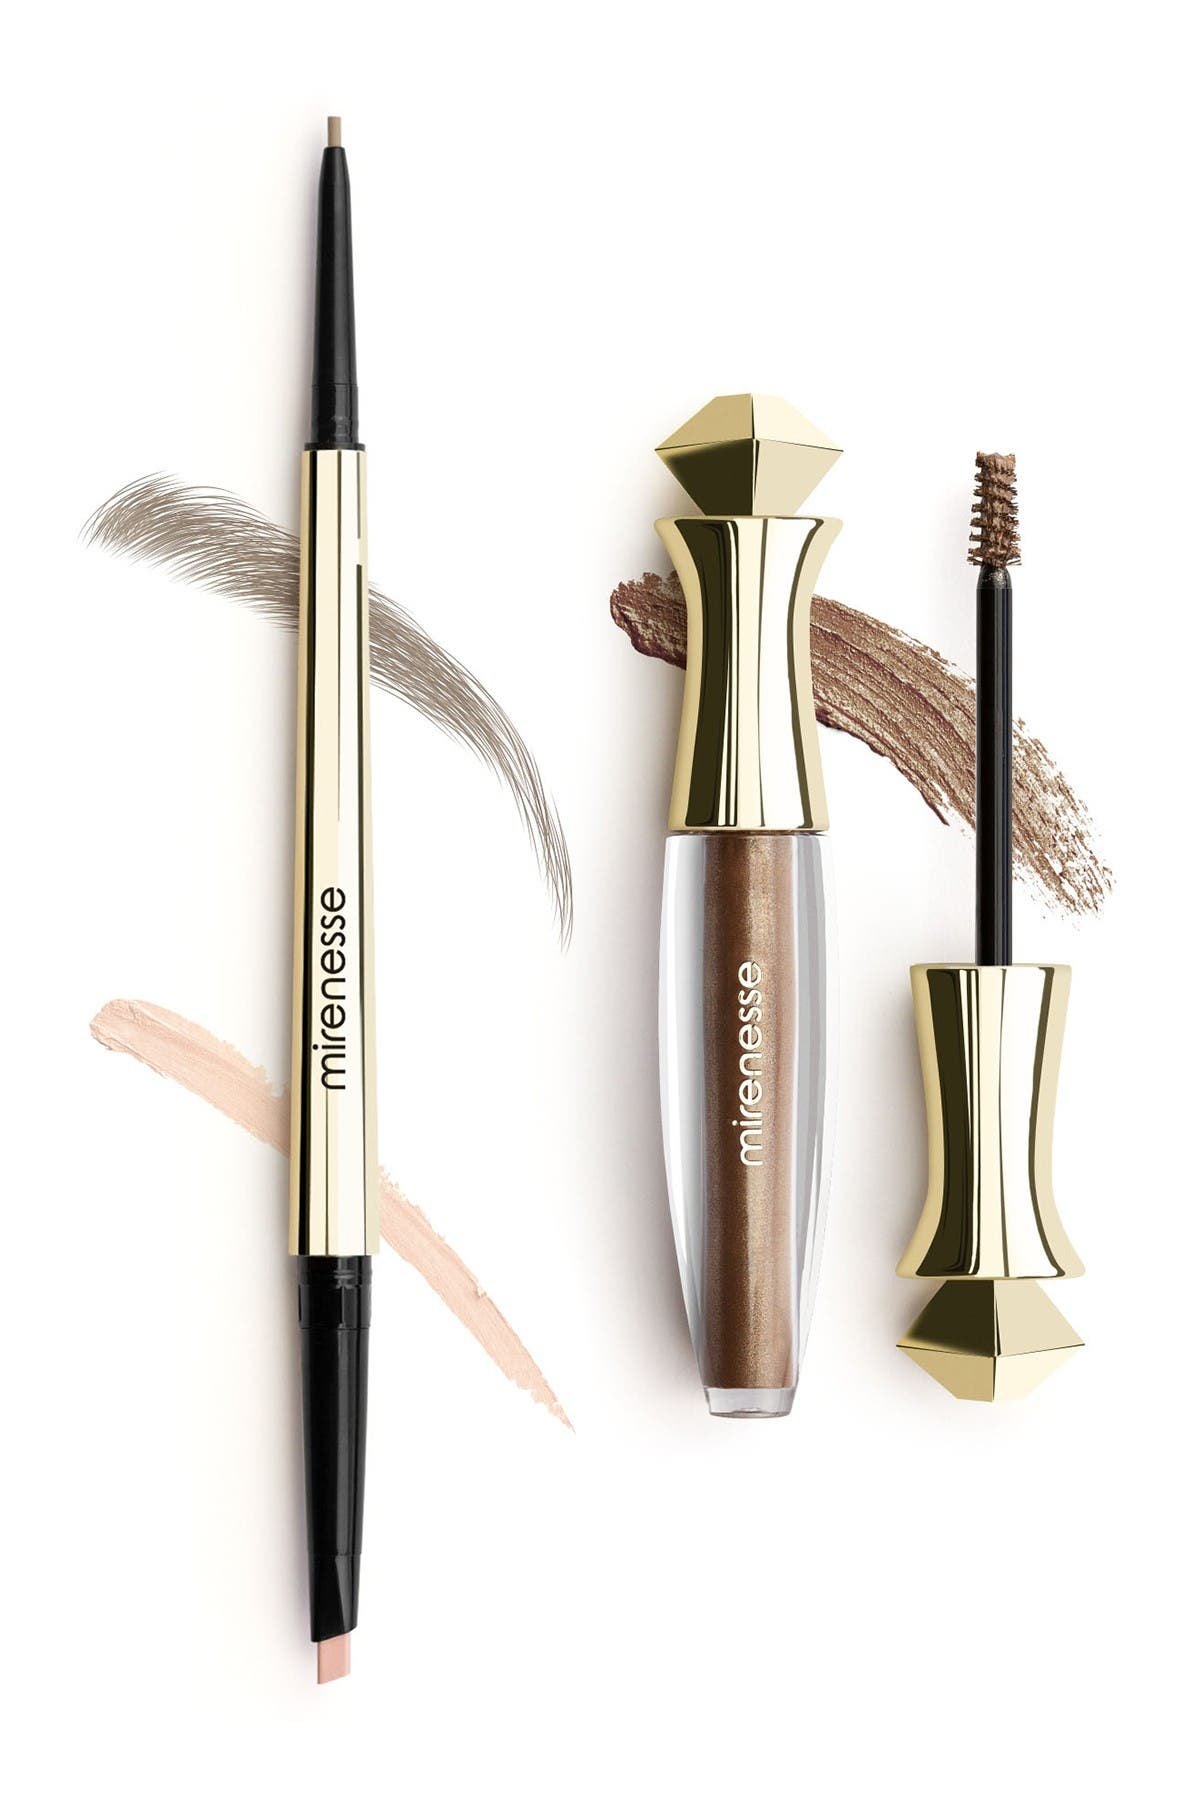 Image of Mirenesse All Day Micro Brow Pencil + Shaping Mascara - 1.Taupe